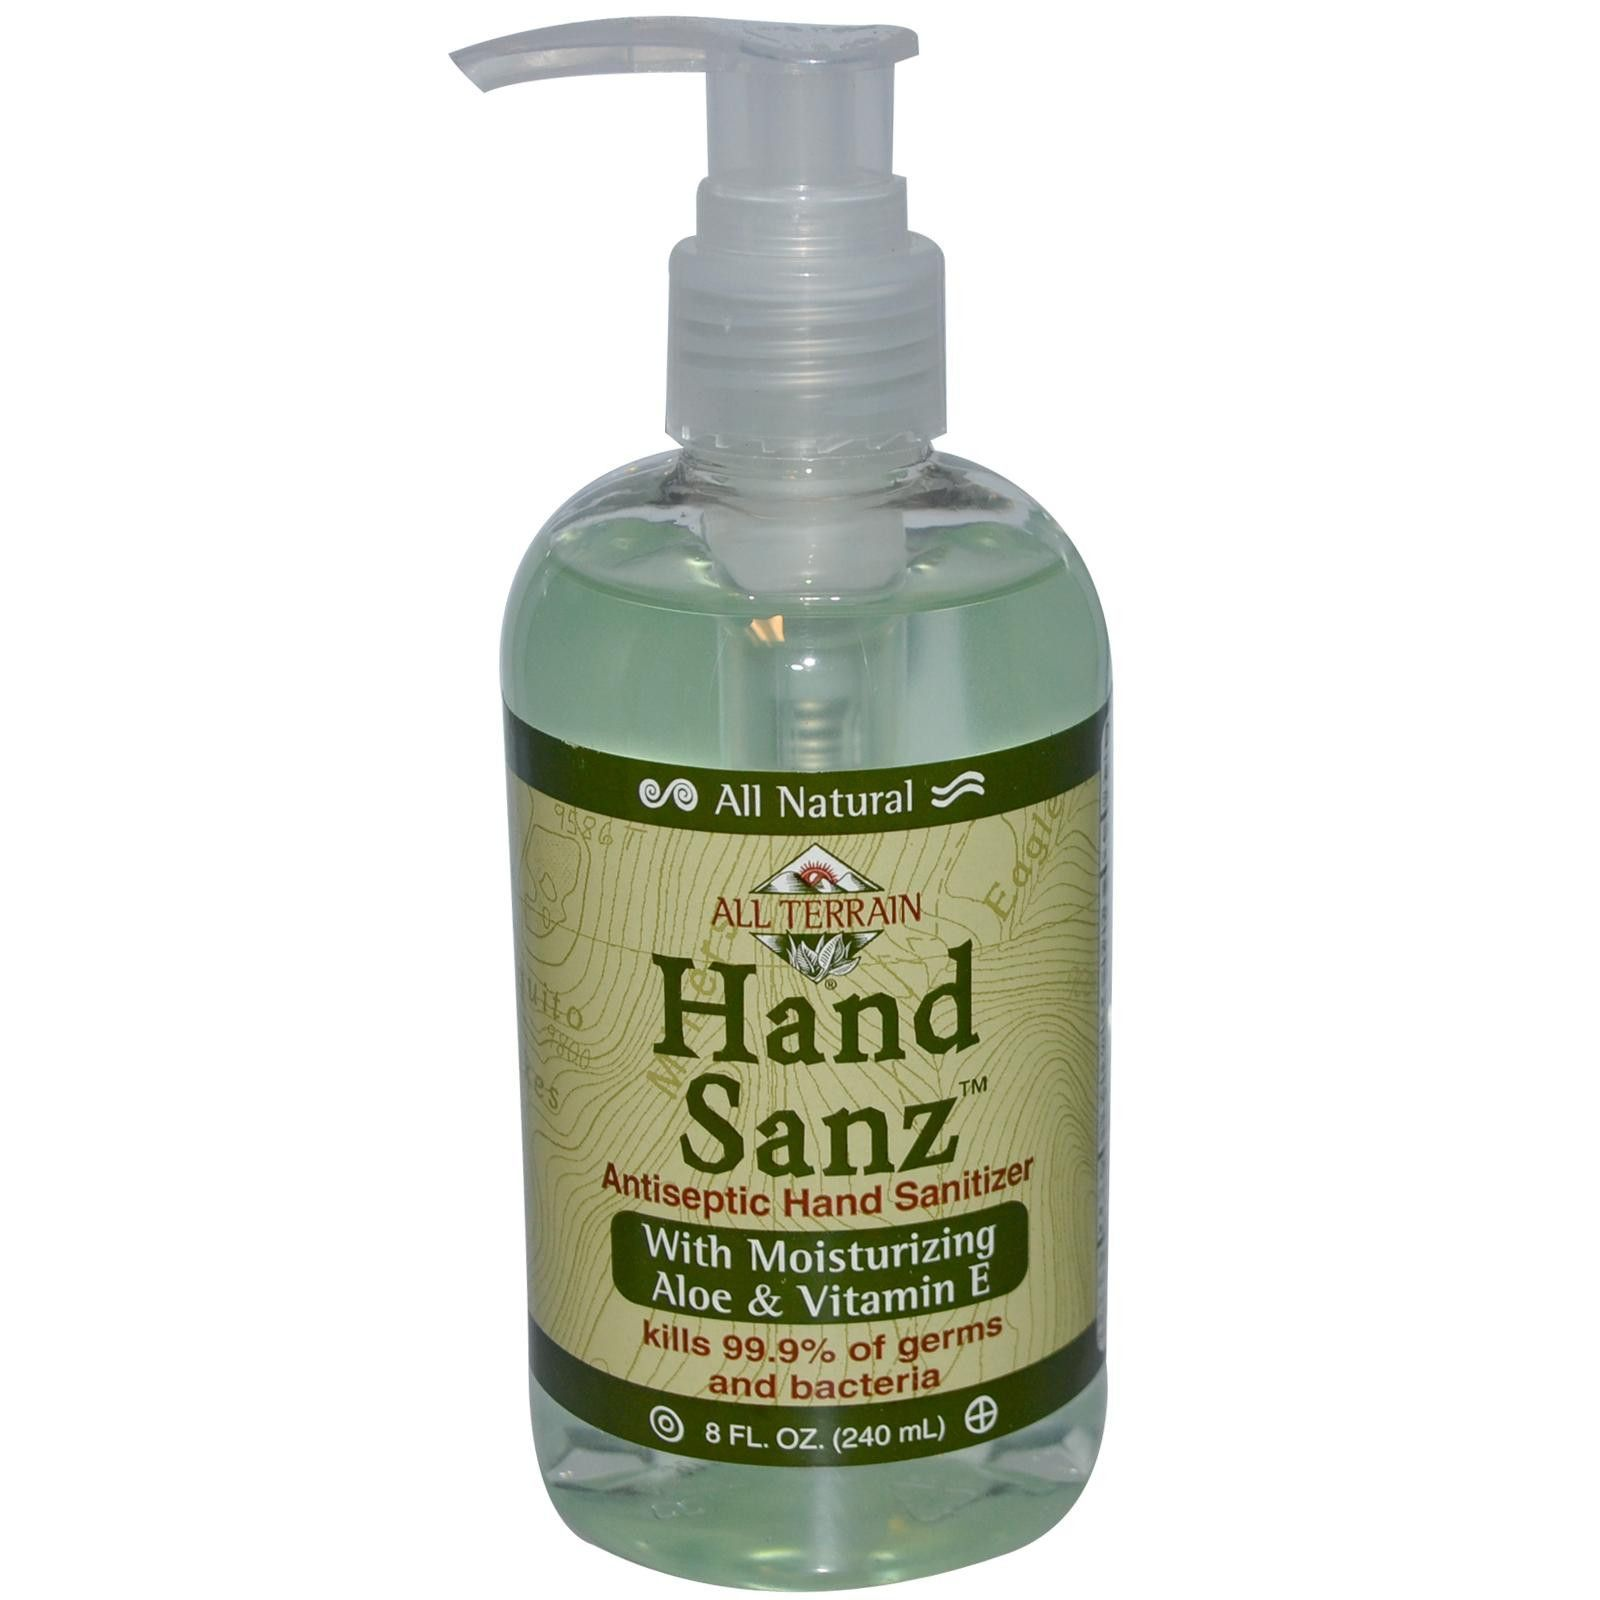 All Terrain Hand Sanitizer Aloe Vitamin E 1x8 Oz Hand